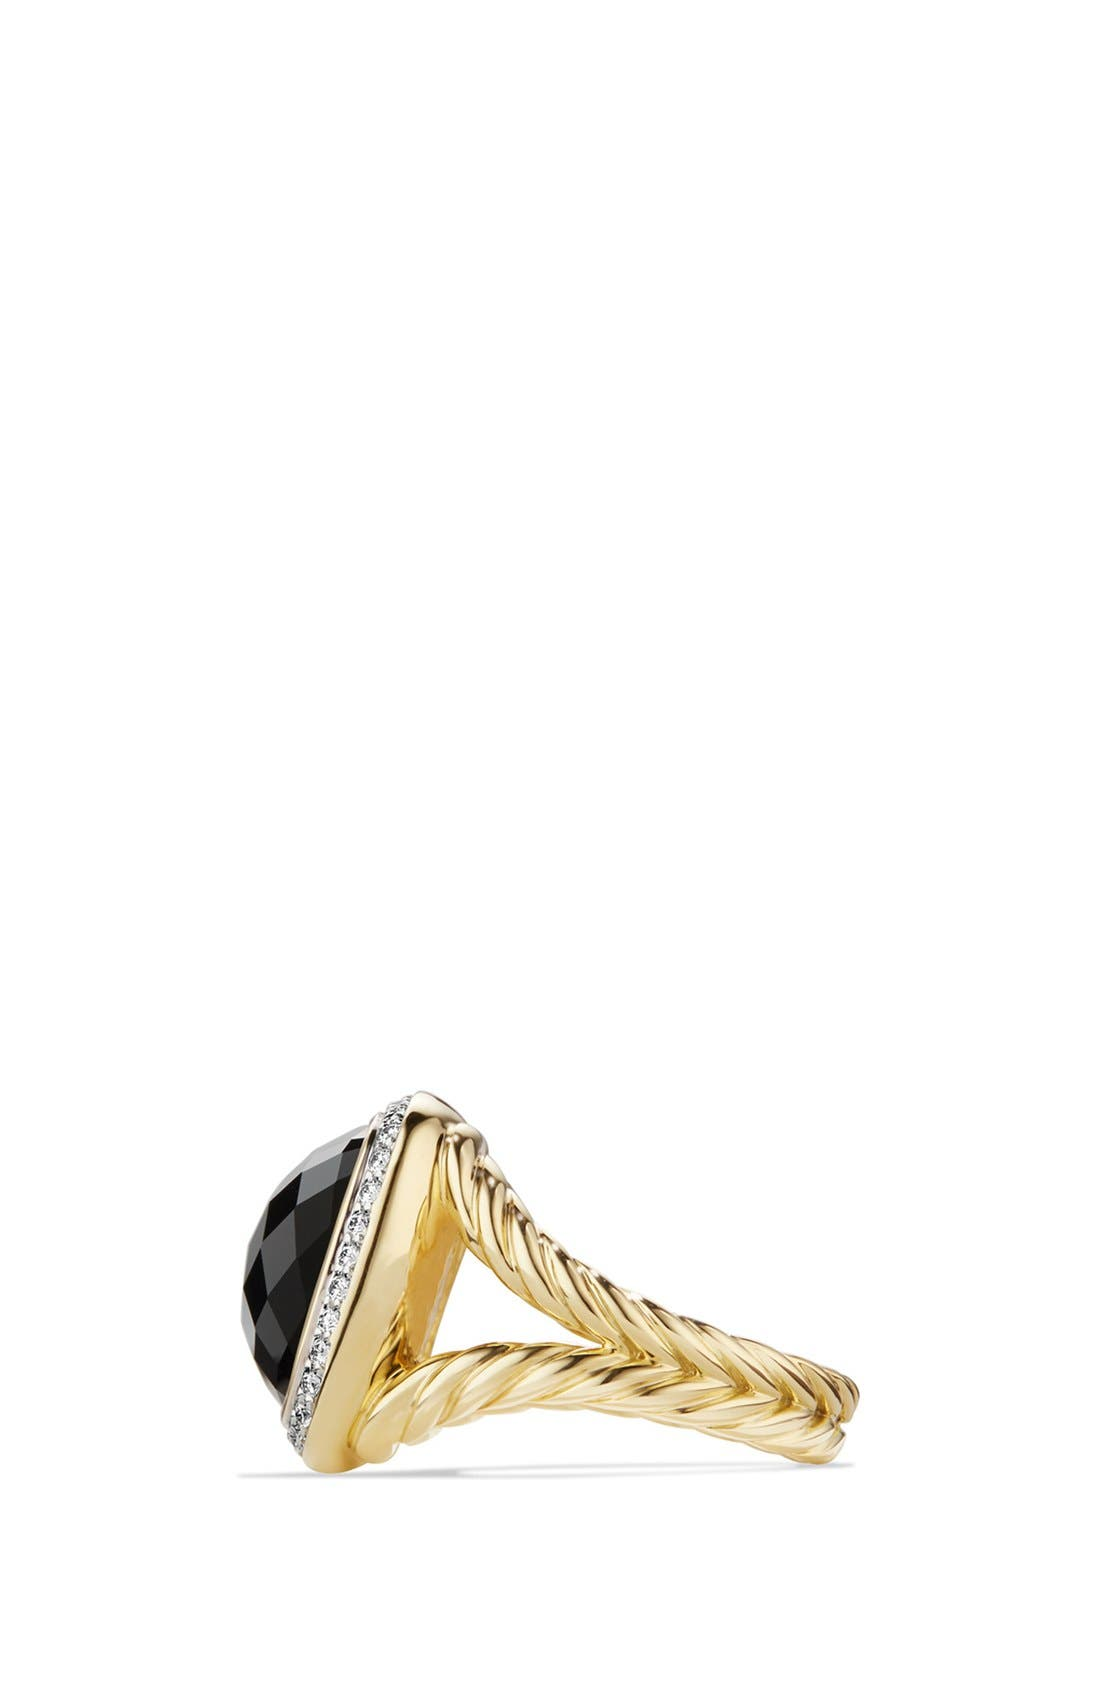 'Albion' Ring with Diamonds in 18k Gold,                             Alternate thumbnail 2, color,                             BLACK ONYX